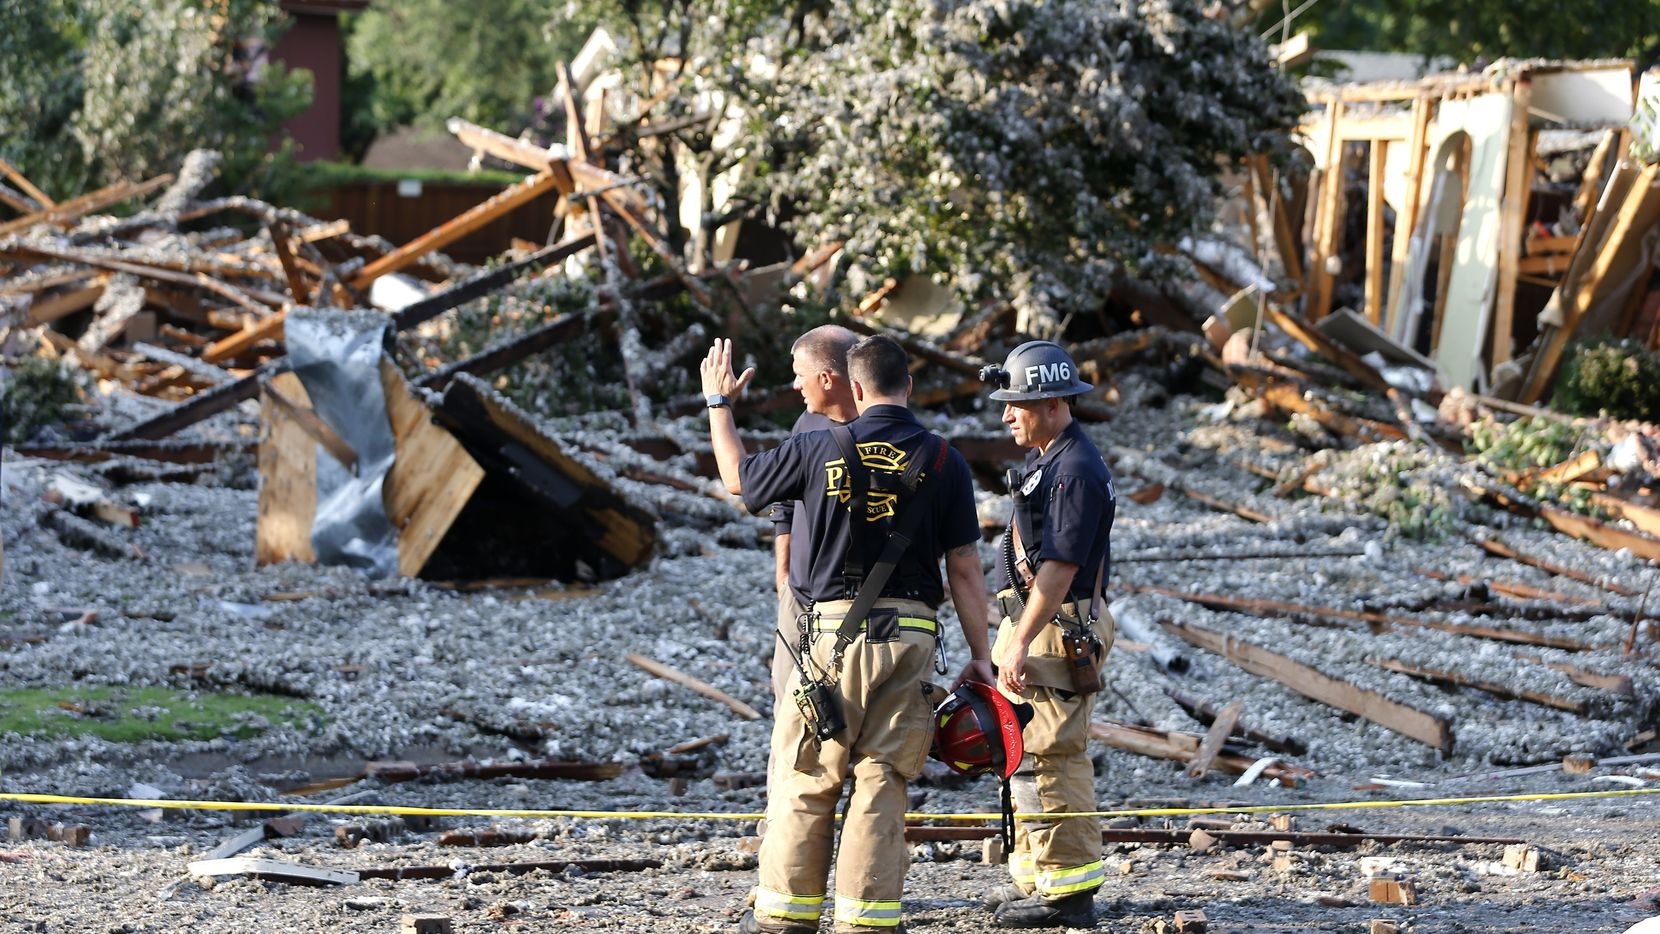 The Plano Fire Department works the scene after a home exploded at about 4:45 p.m. in the 4400 block of Cleveland Drive in Plano on Monday, July 19, 2021. (Stewart F. House/Special Contributor)